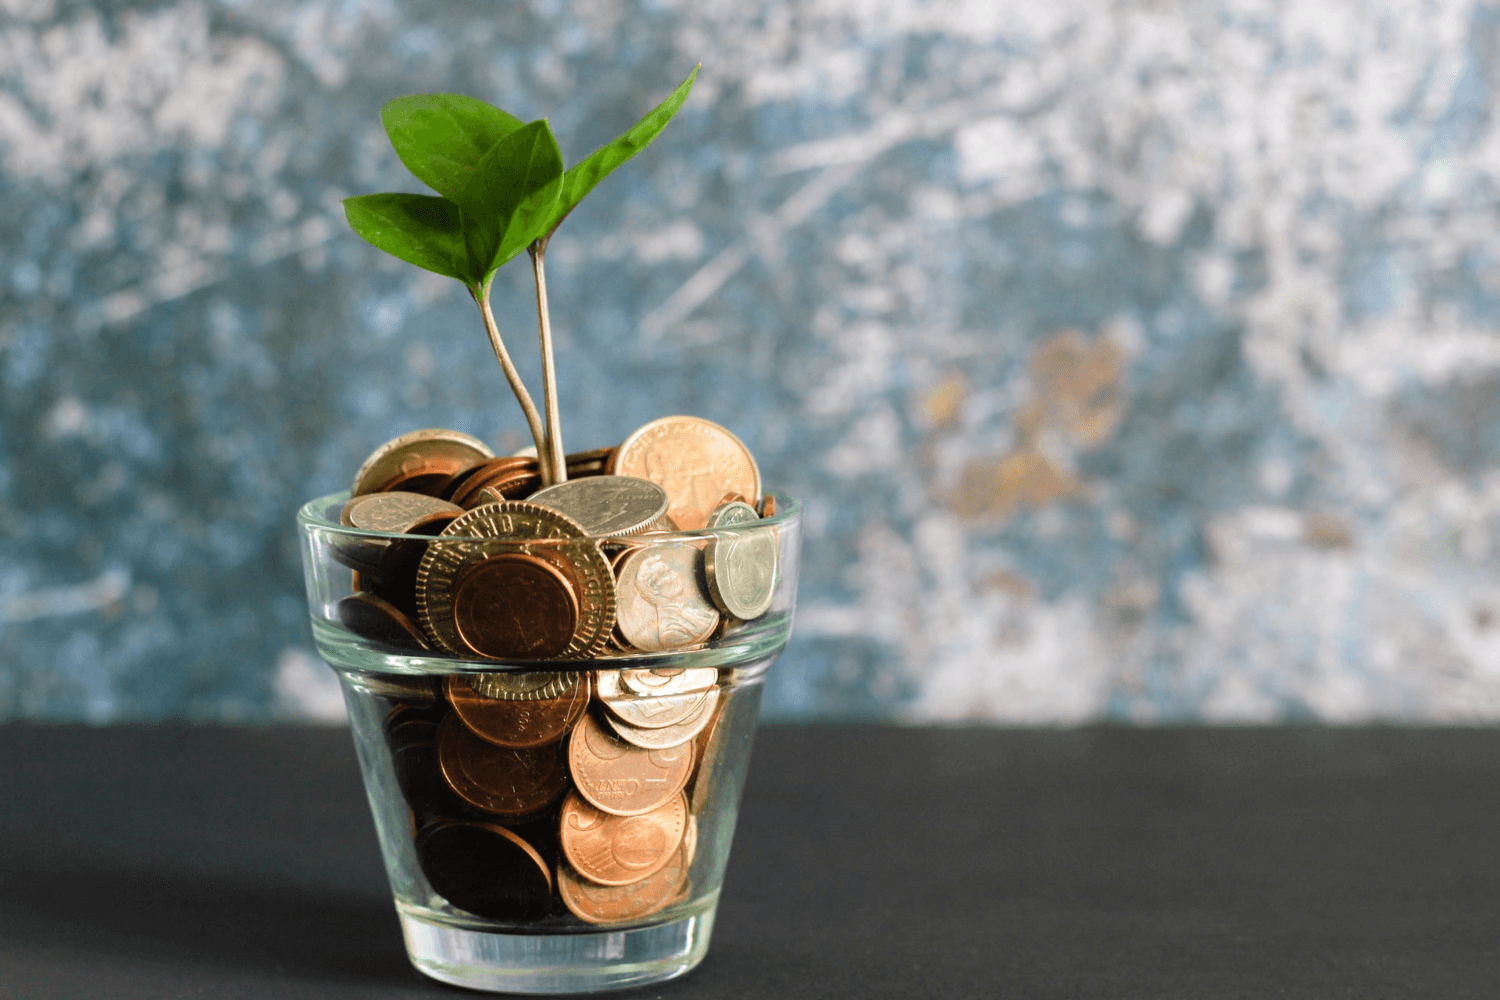 Being a freelancer means setting your rate - a glass full of coins symbolising growth.